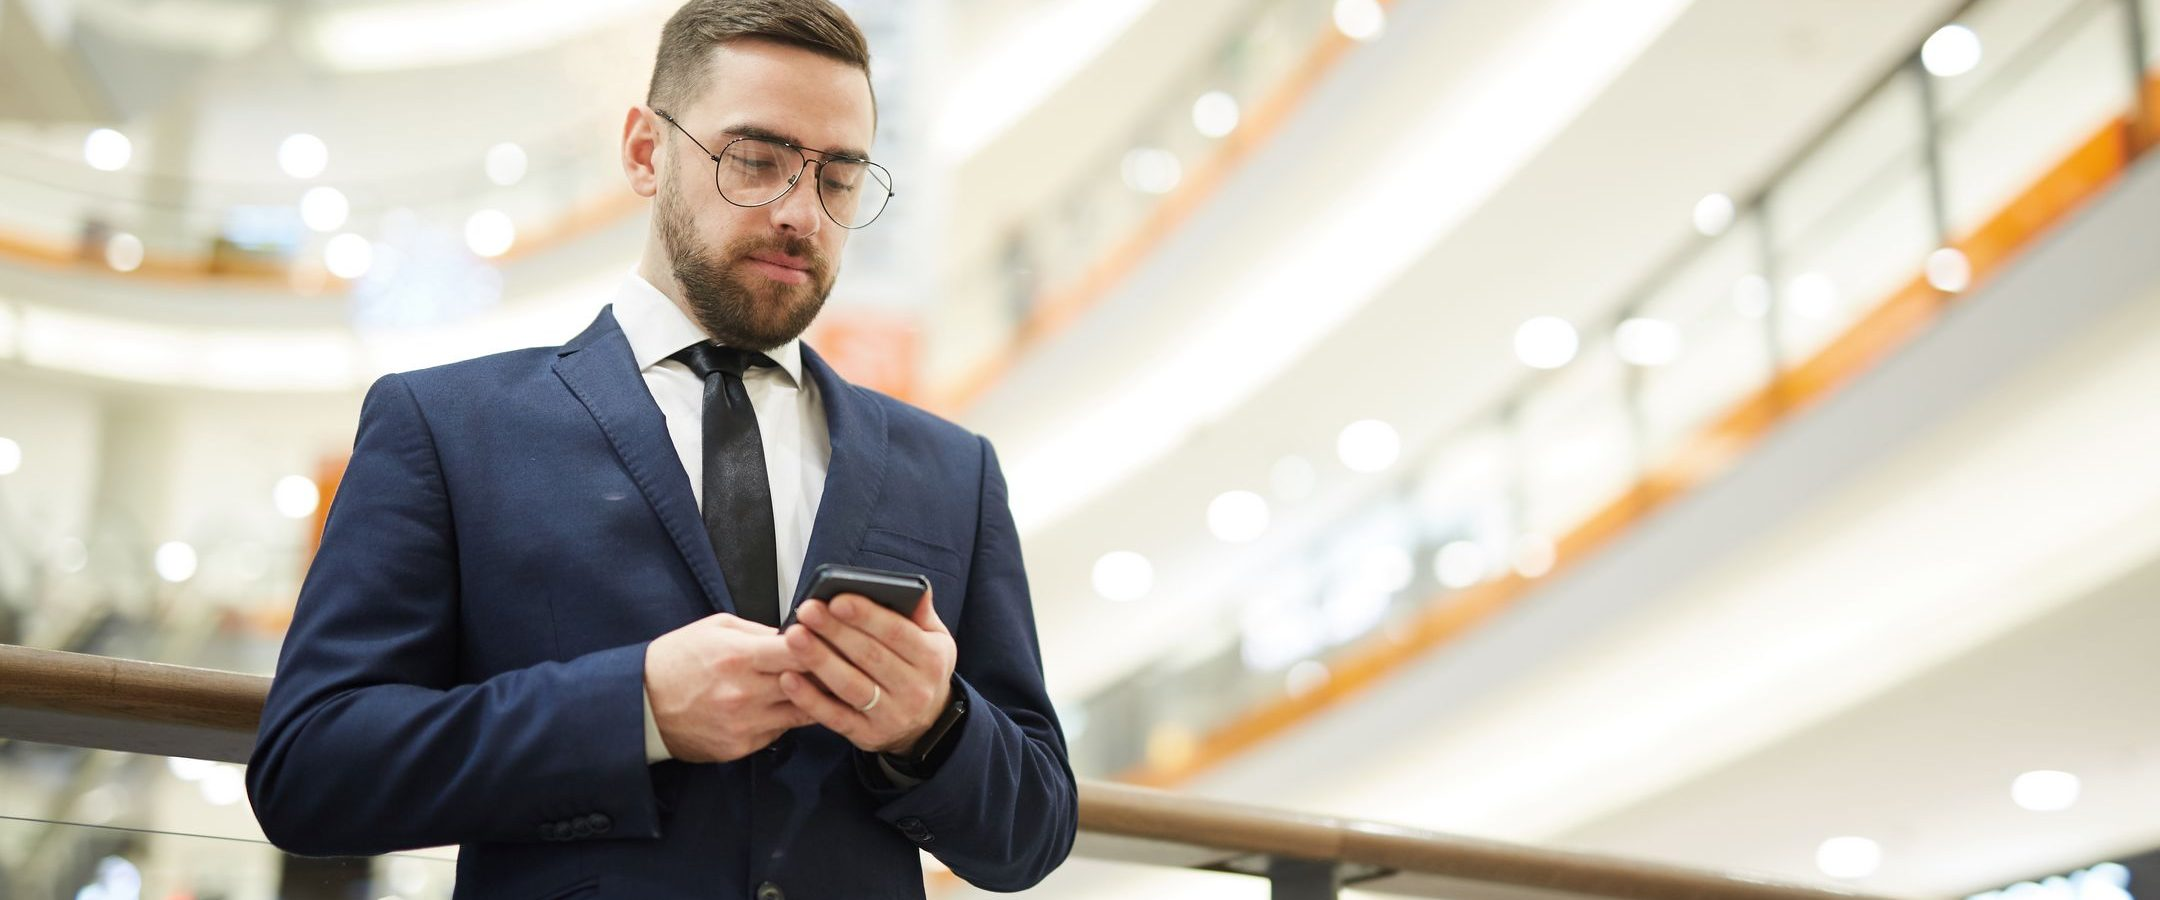 Young bearded businessman in elegant suit scrolling in smartphone or texting inside modern trade center